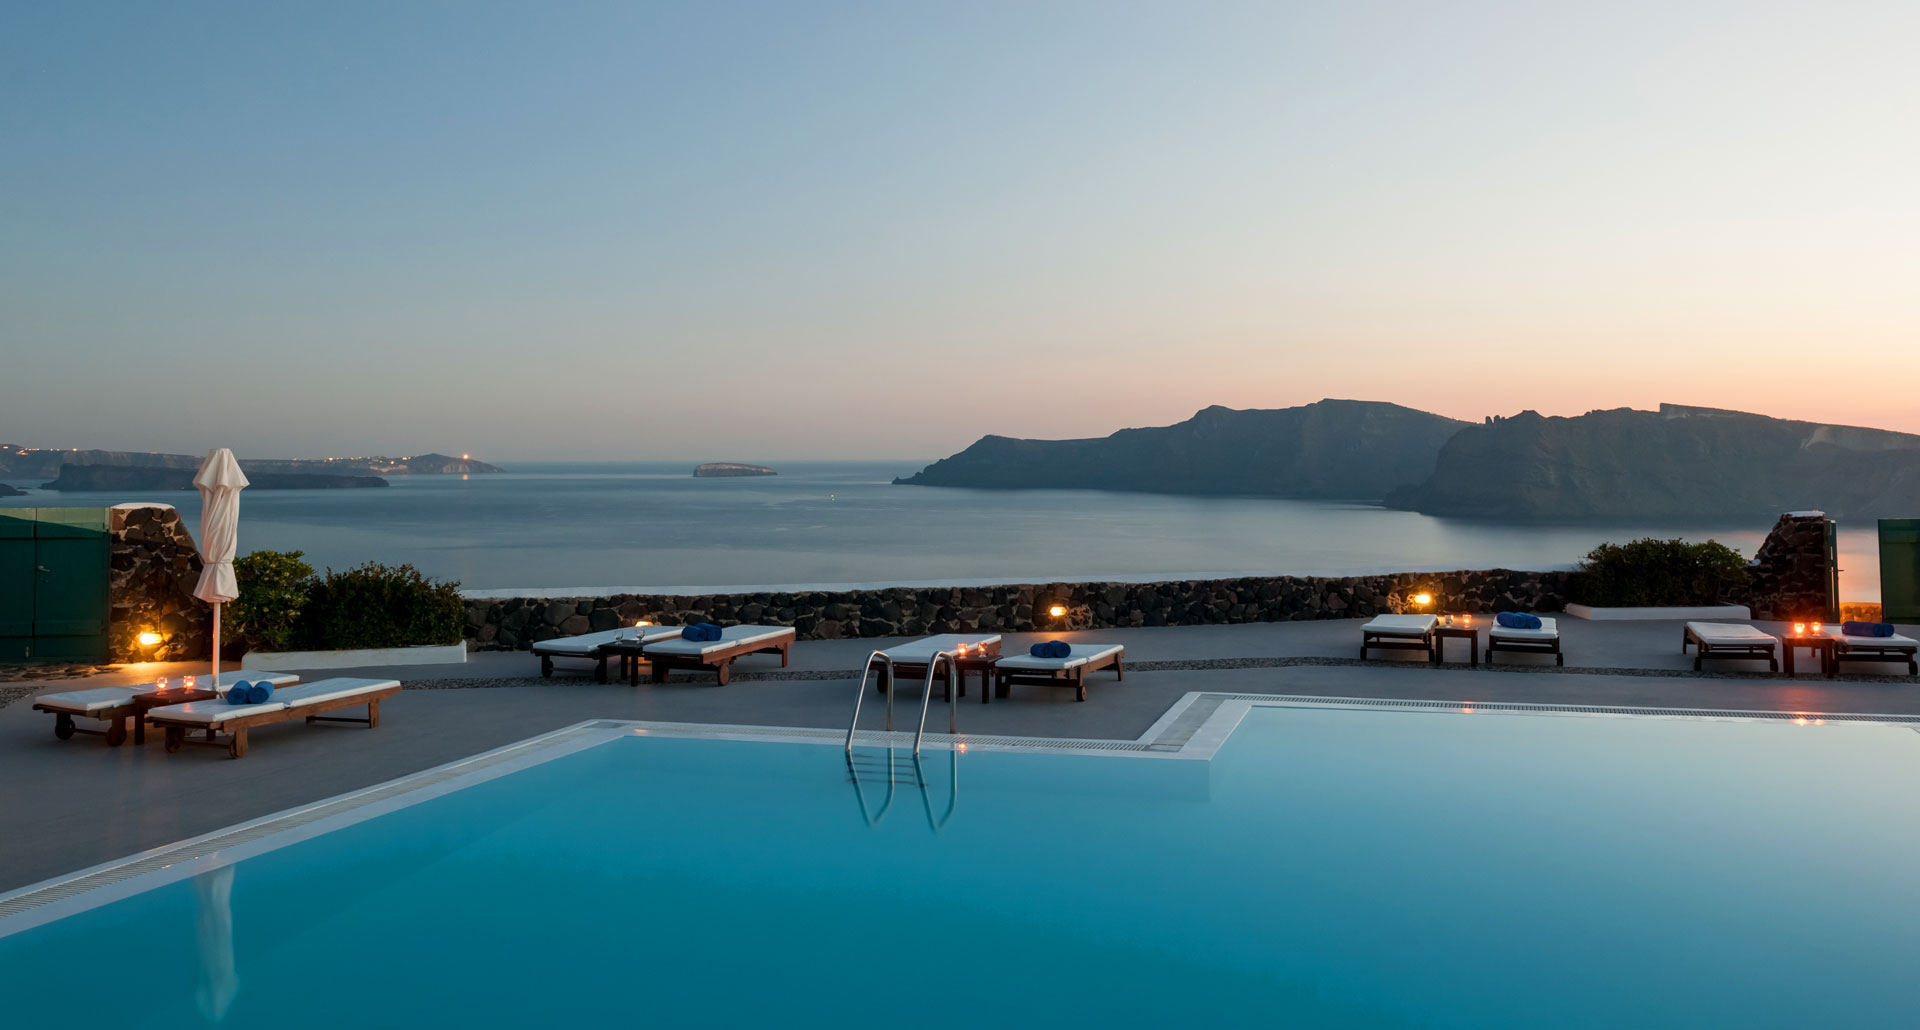 Evening by the pool at Strogili Hotel Apartments in Santorini